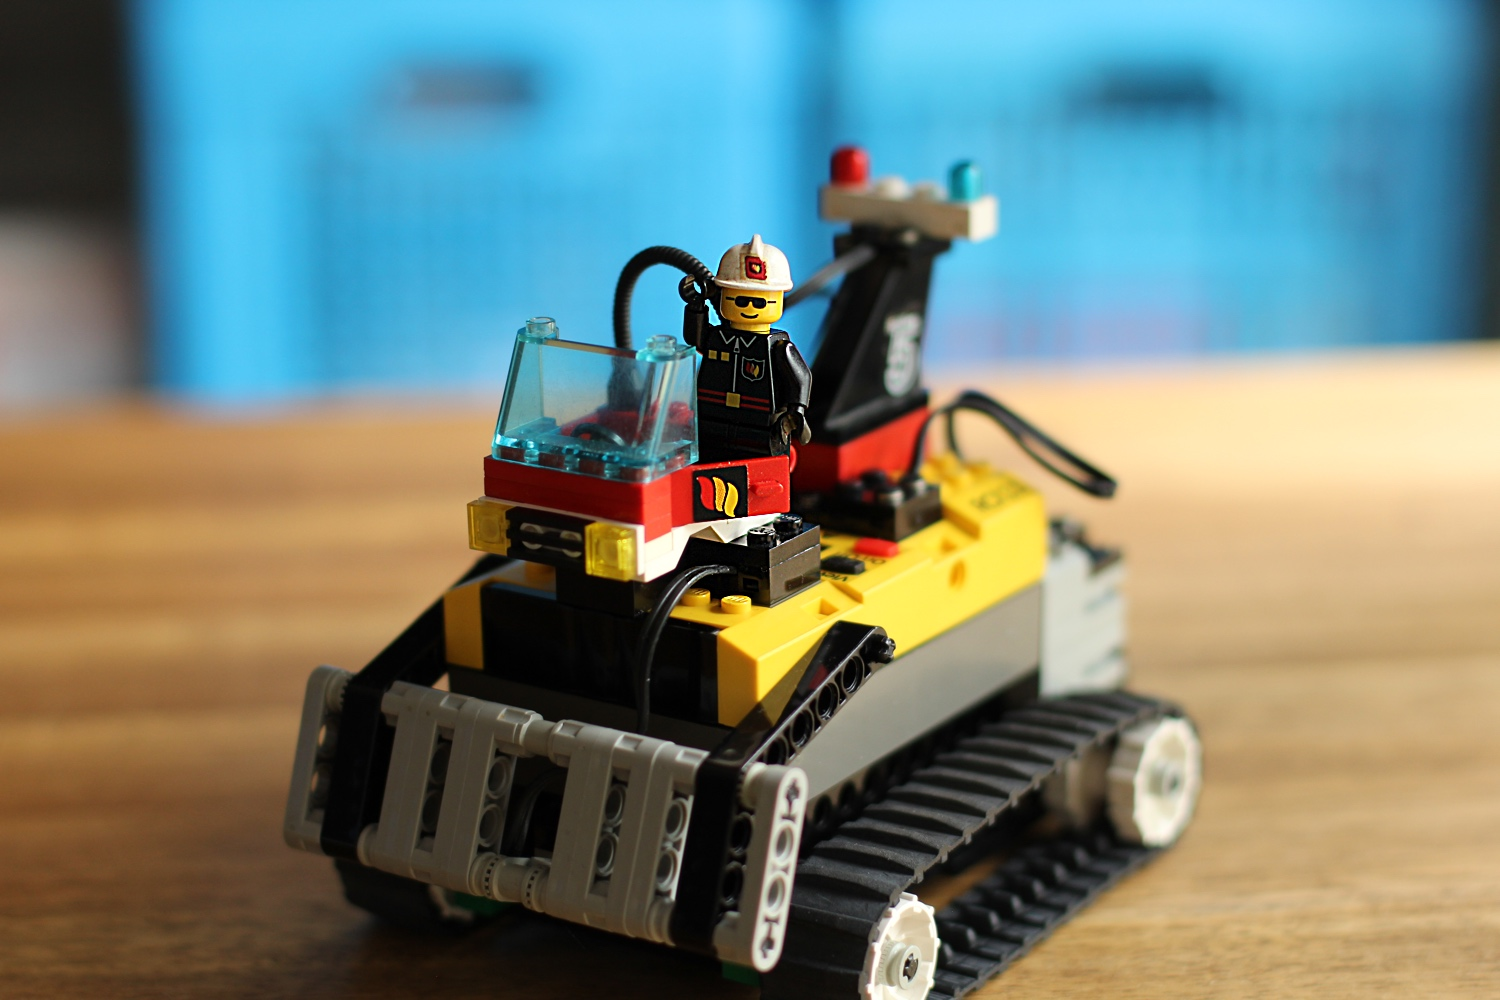 Lego MindStorms RCX 2.0 - Fire truck